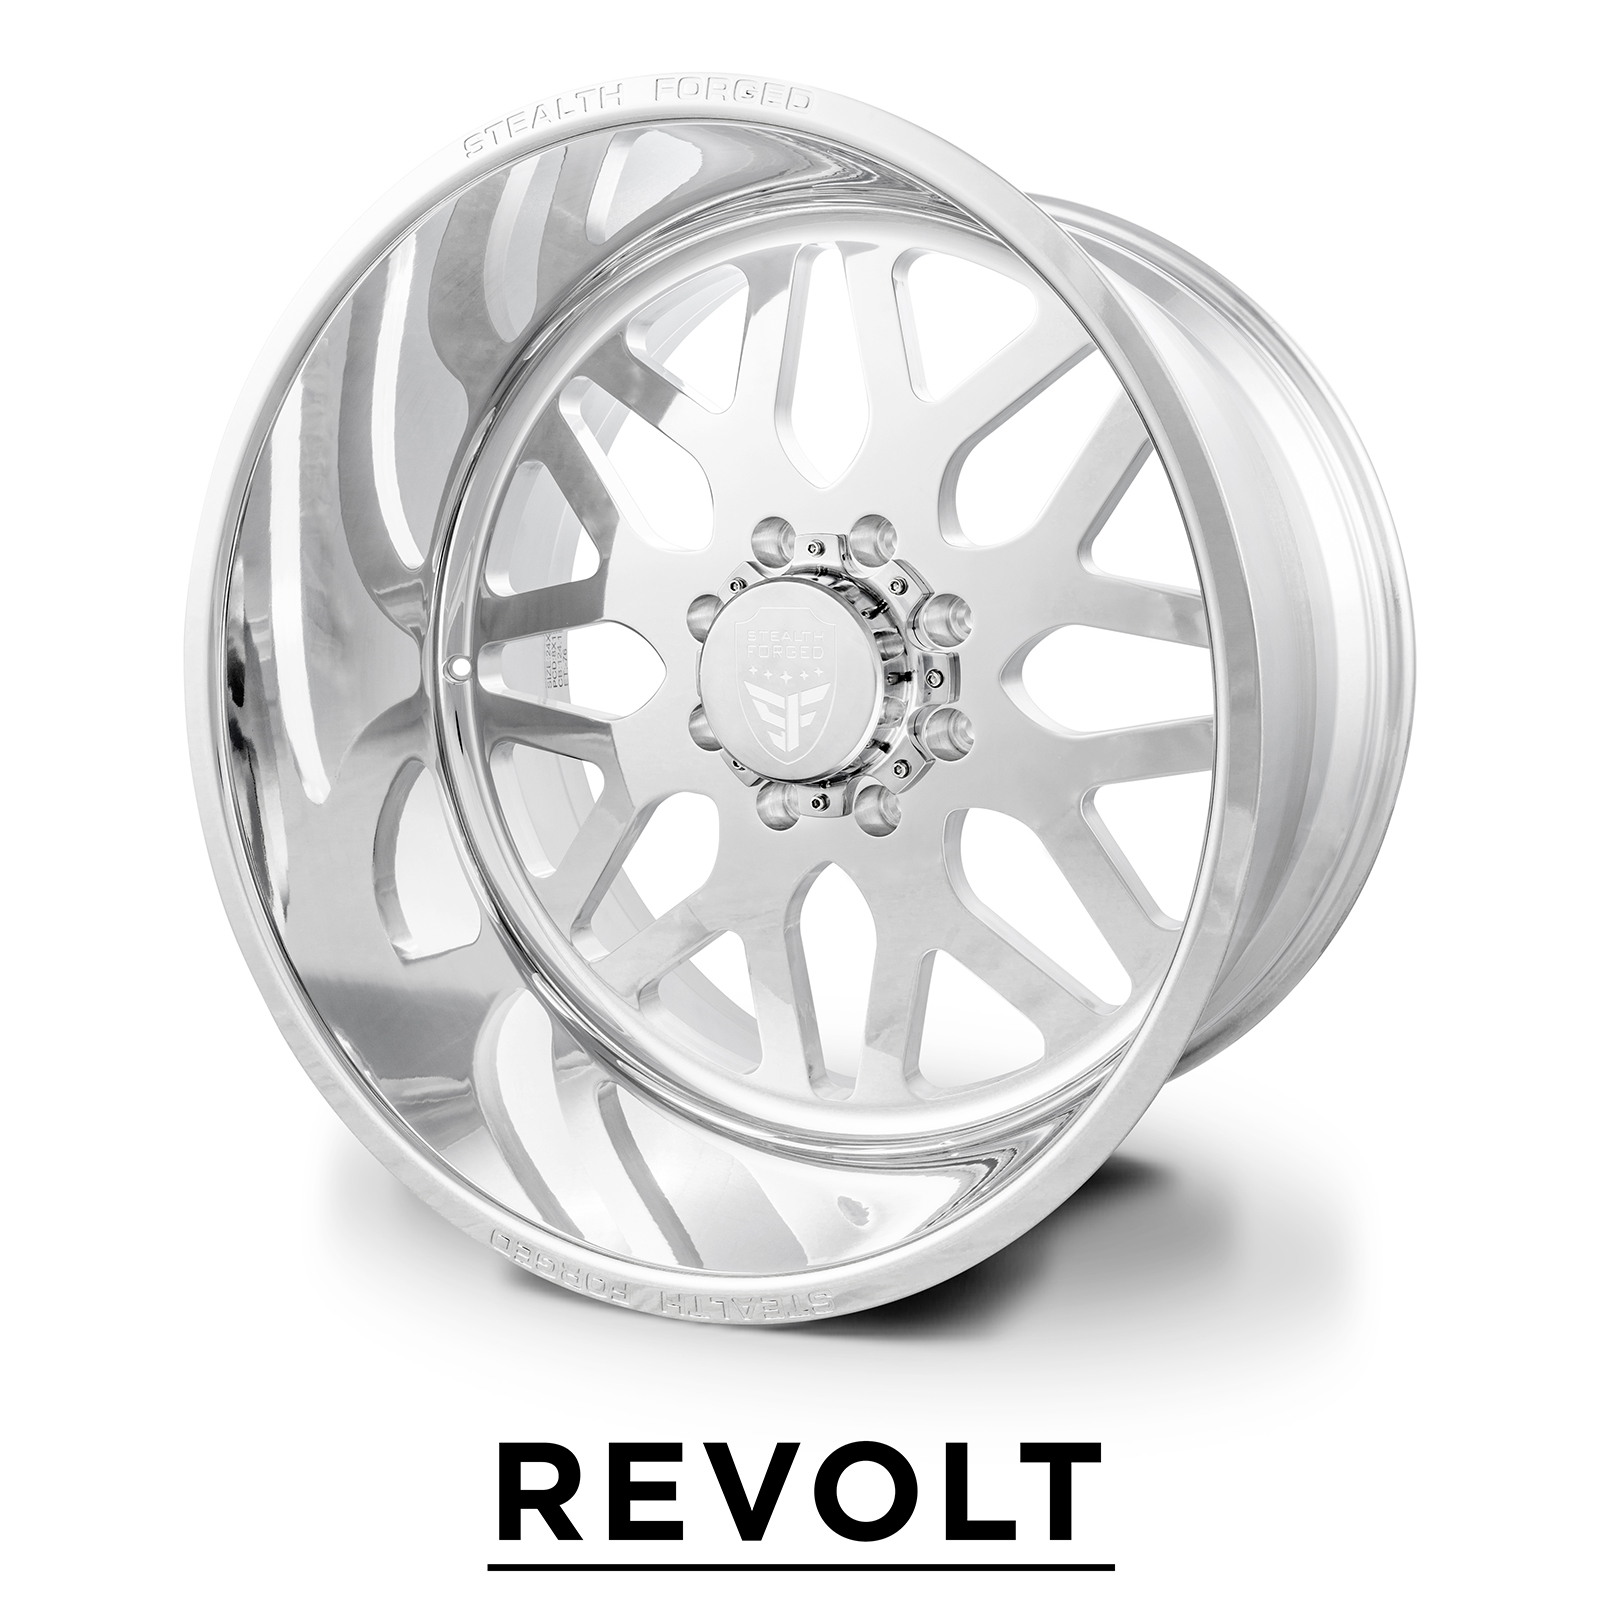 REVOLT | forged polish | 22x12, 24x14